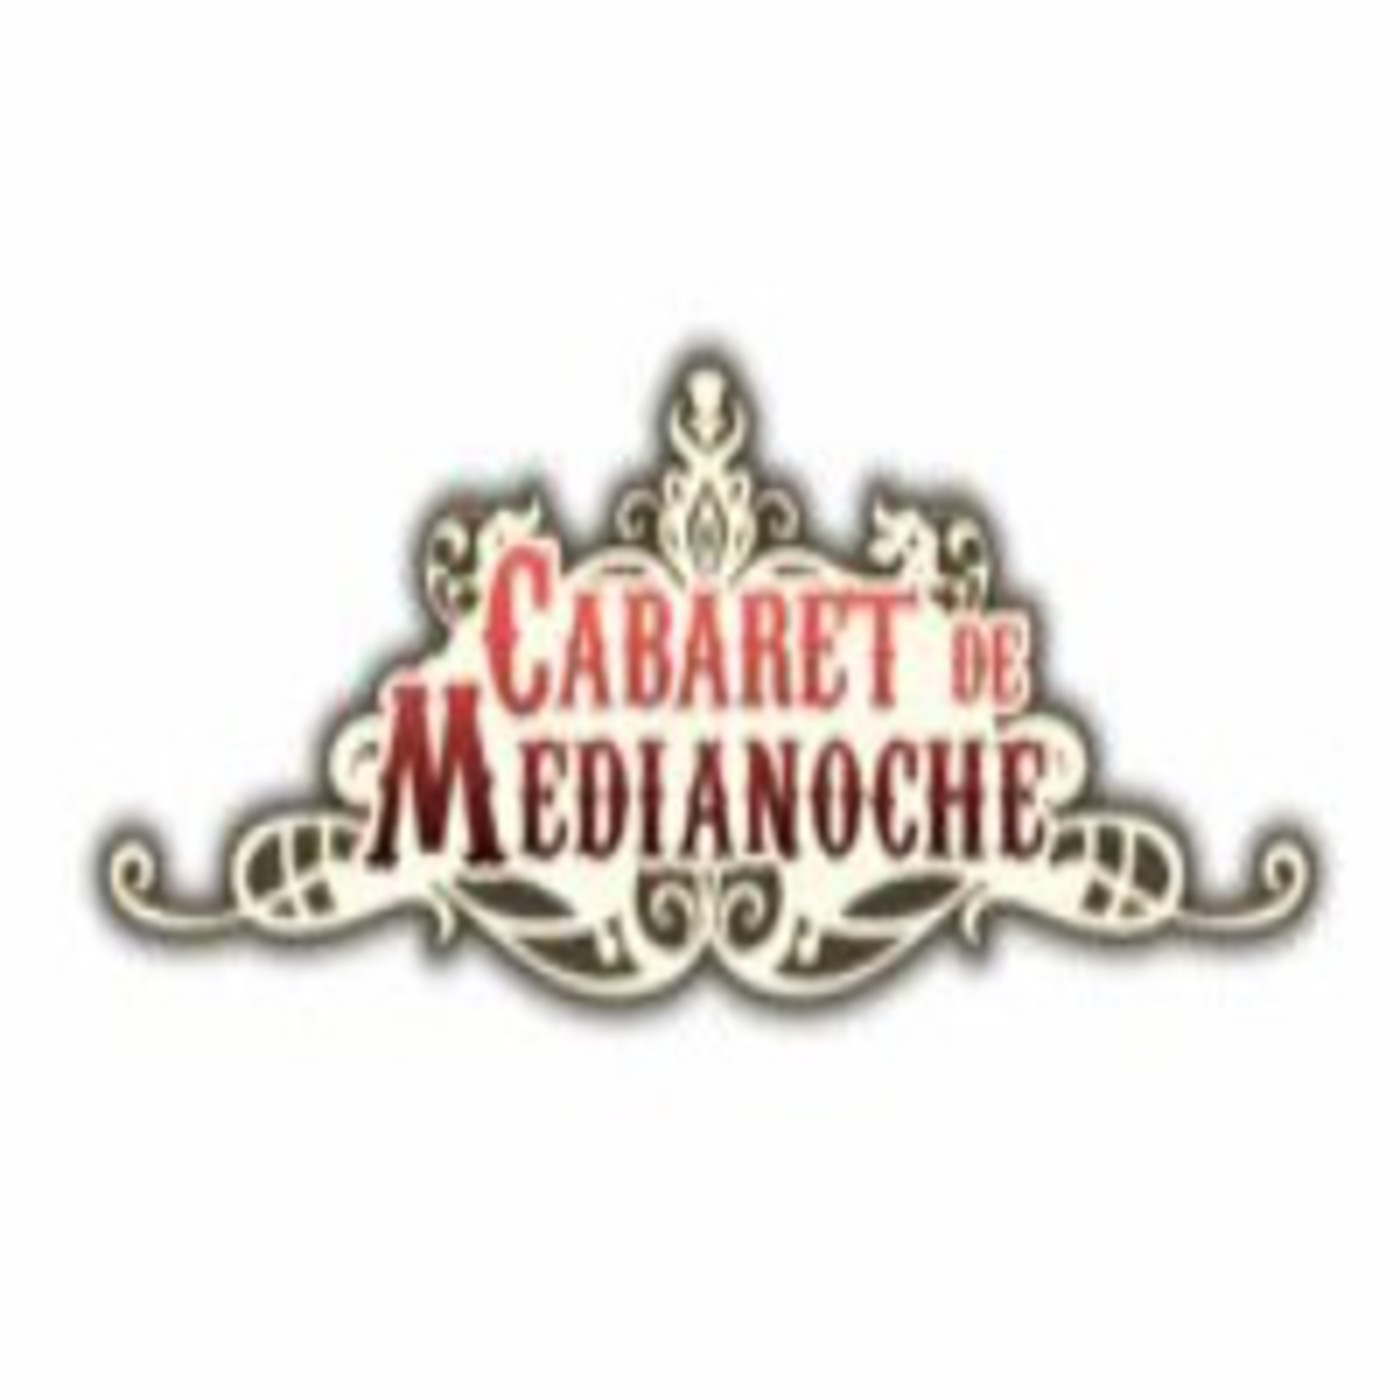 Podcast Cabaret de Medianoche.